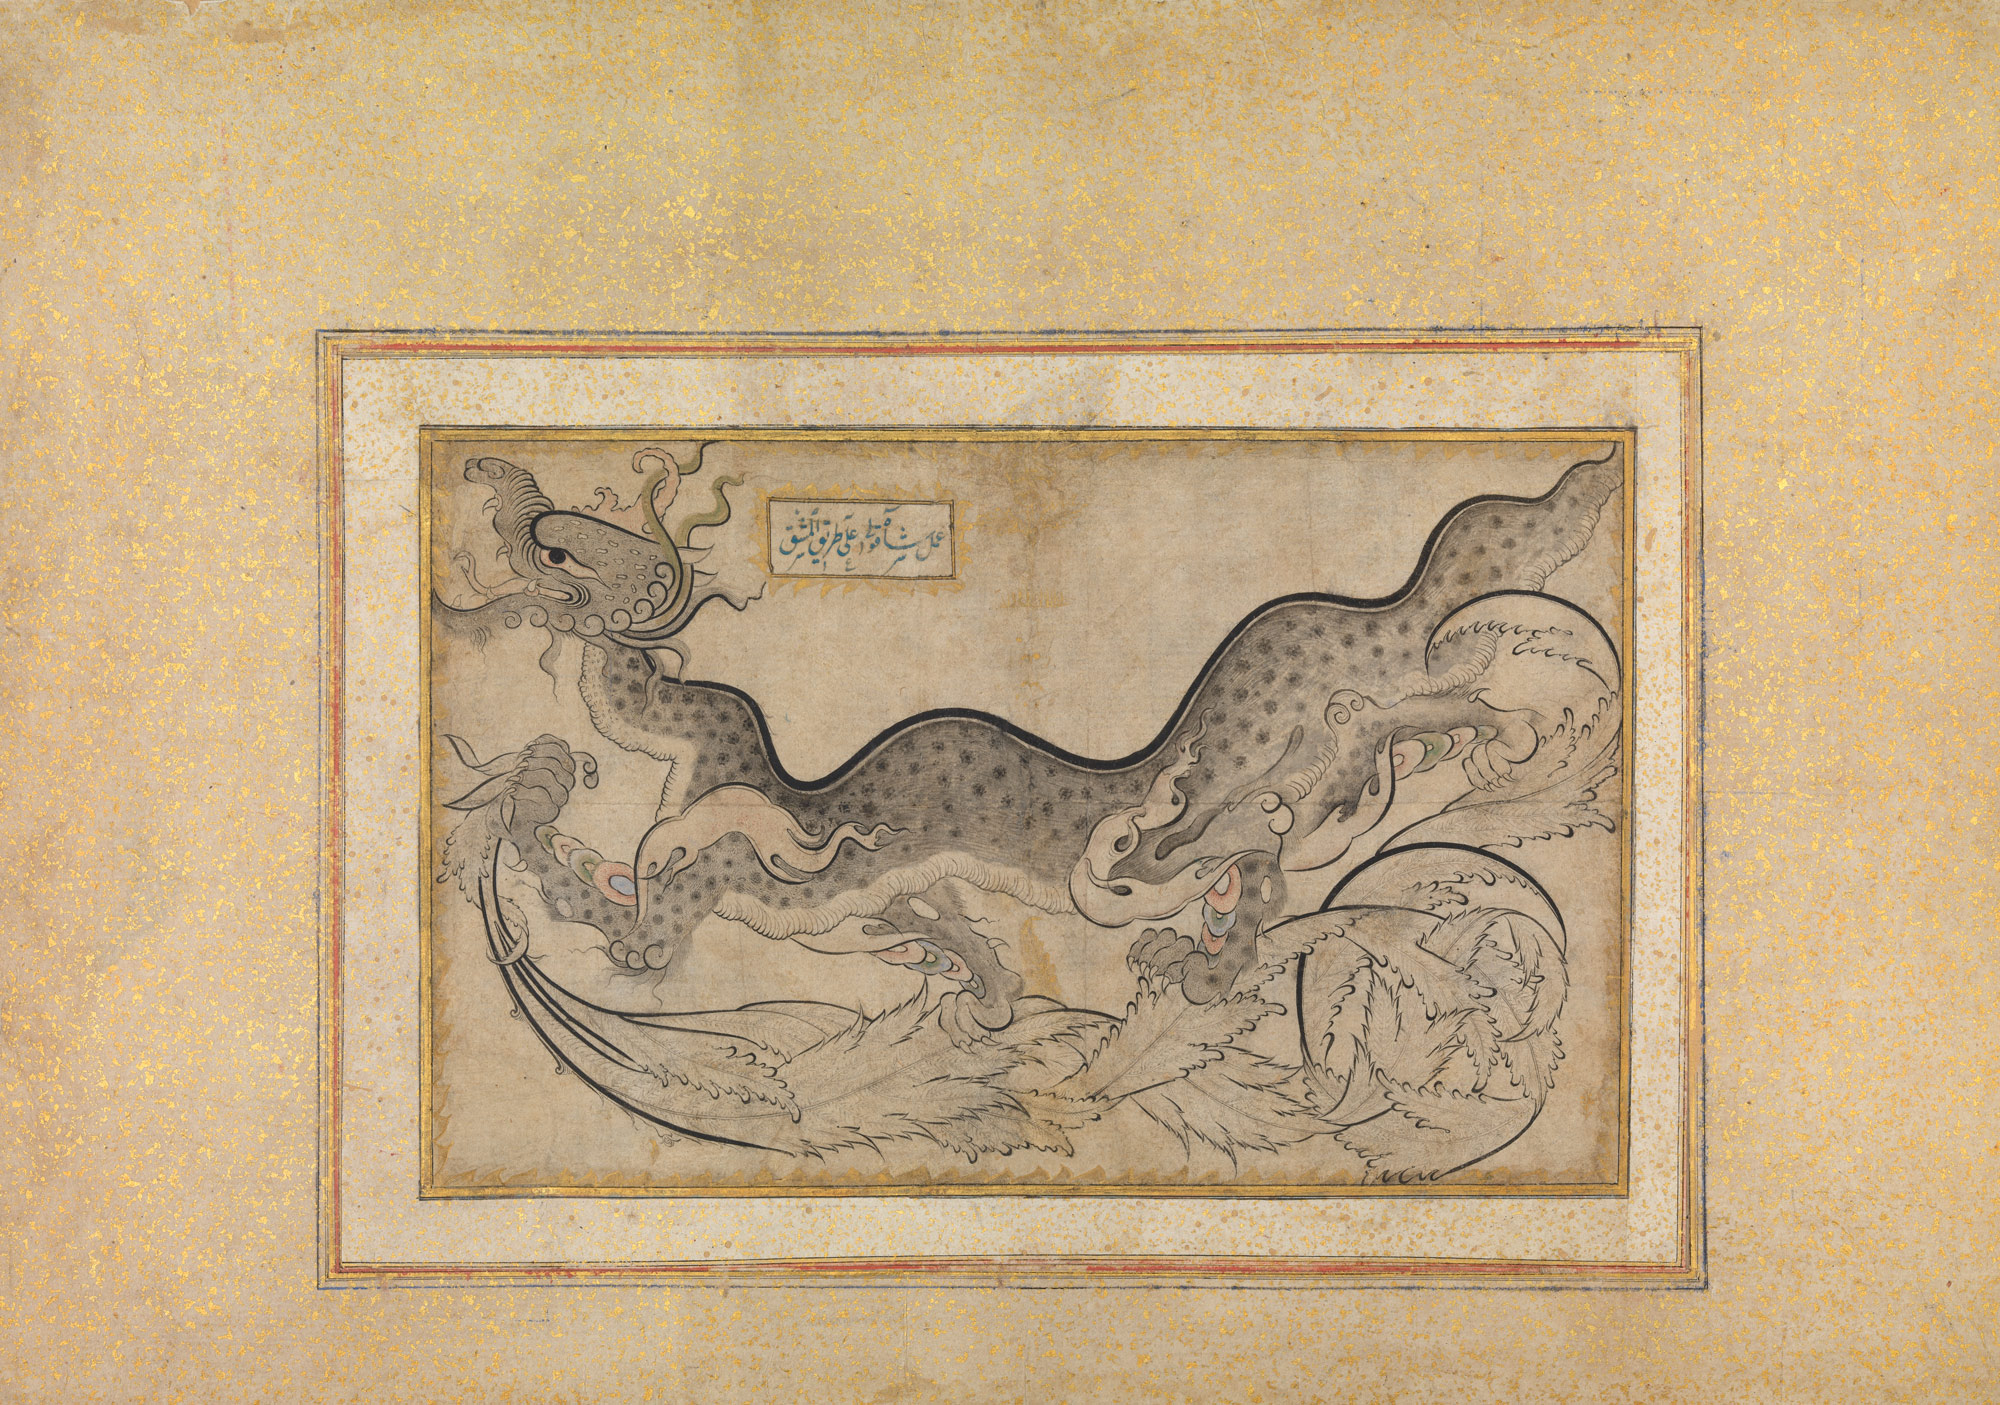 Saz-style Drawing of a Dragon amid Foliage